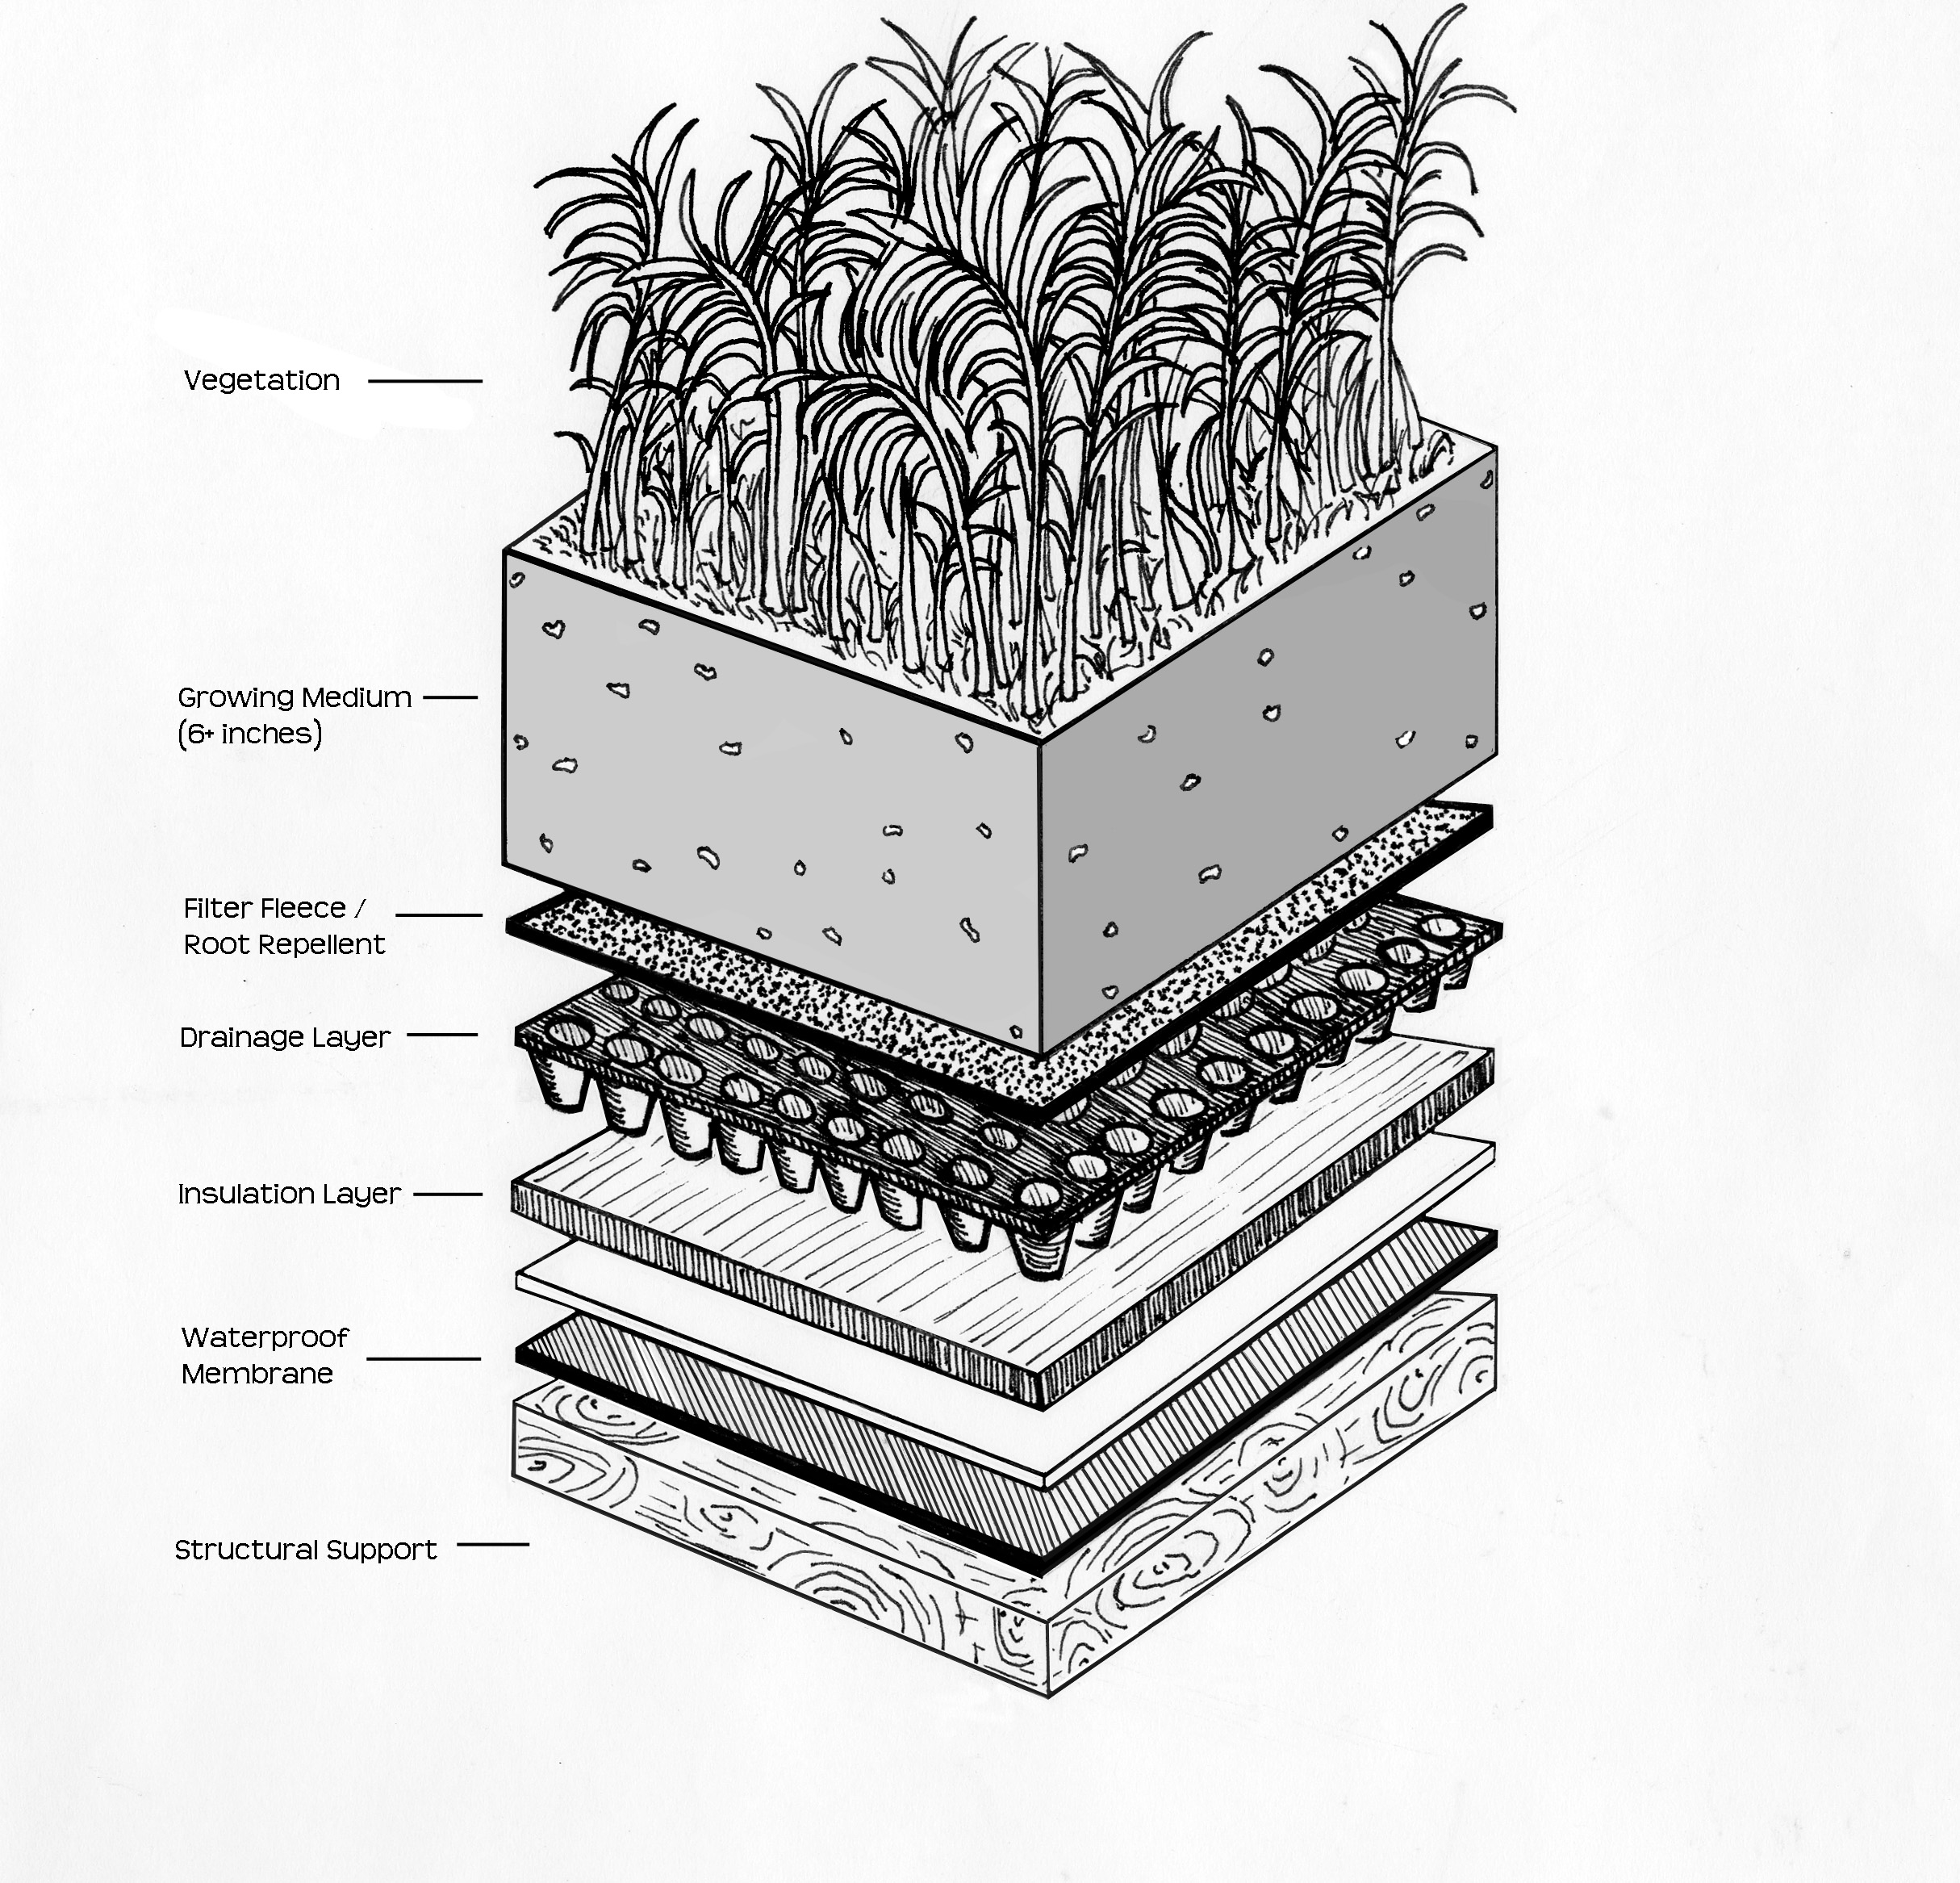 Components Of An Intensive Green Roof Click For High Res Version